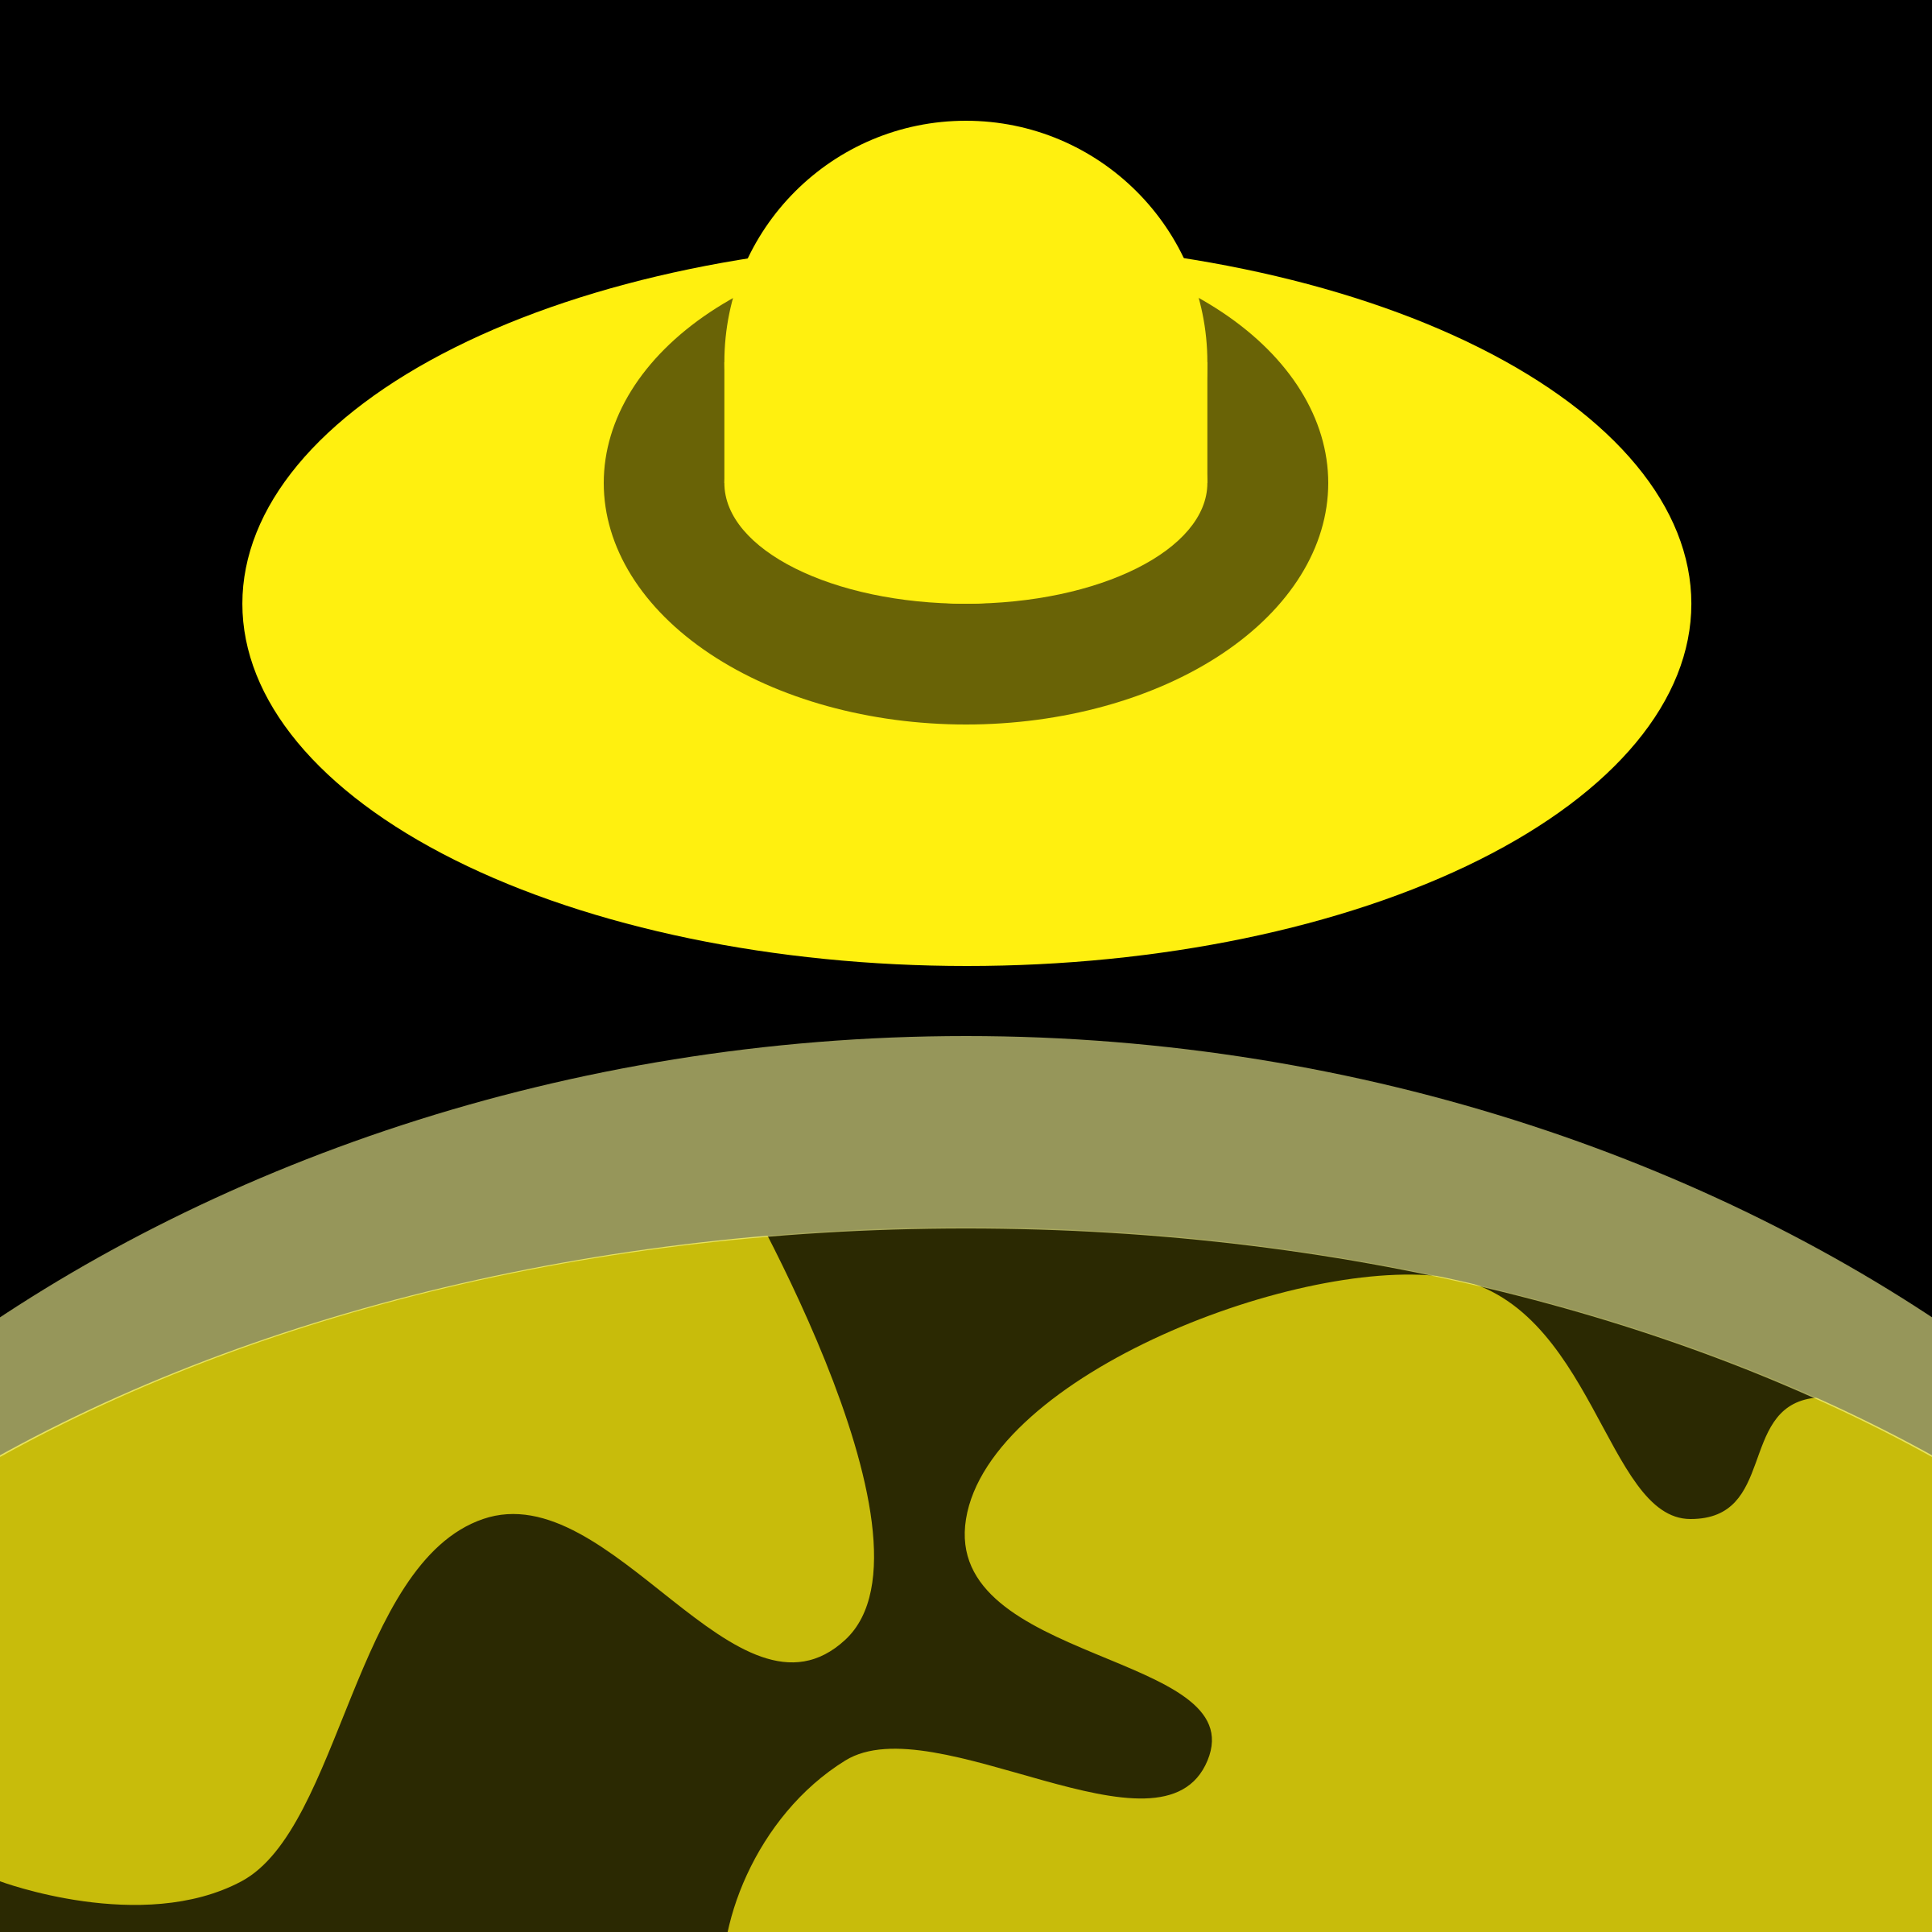 Yellow/Black UFO over planet 16px icon by qubodup